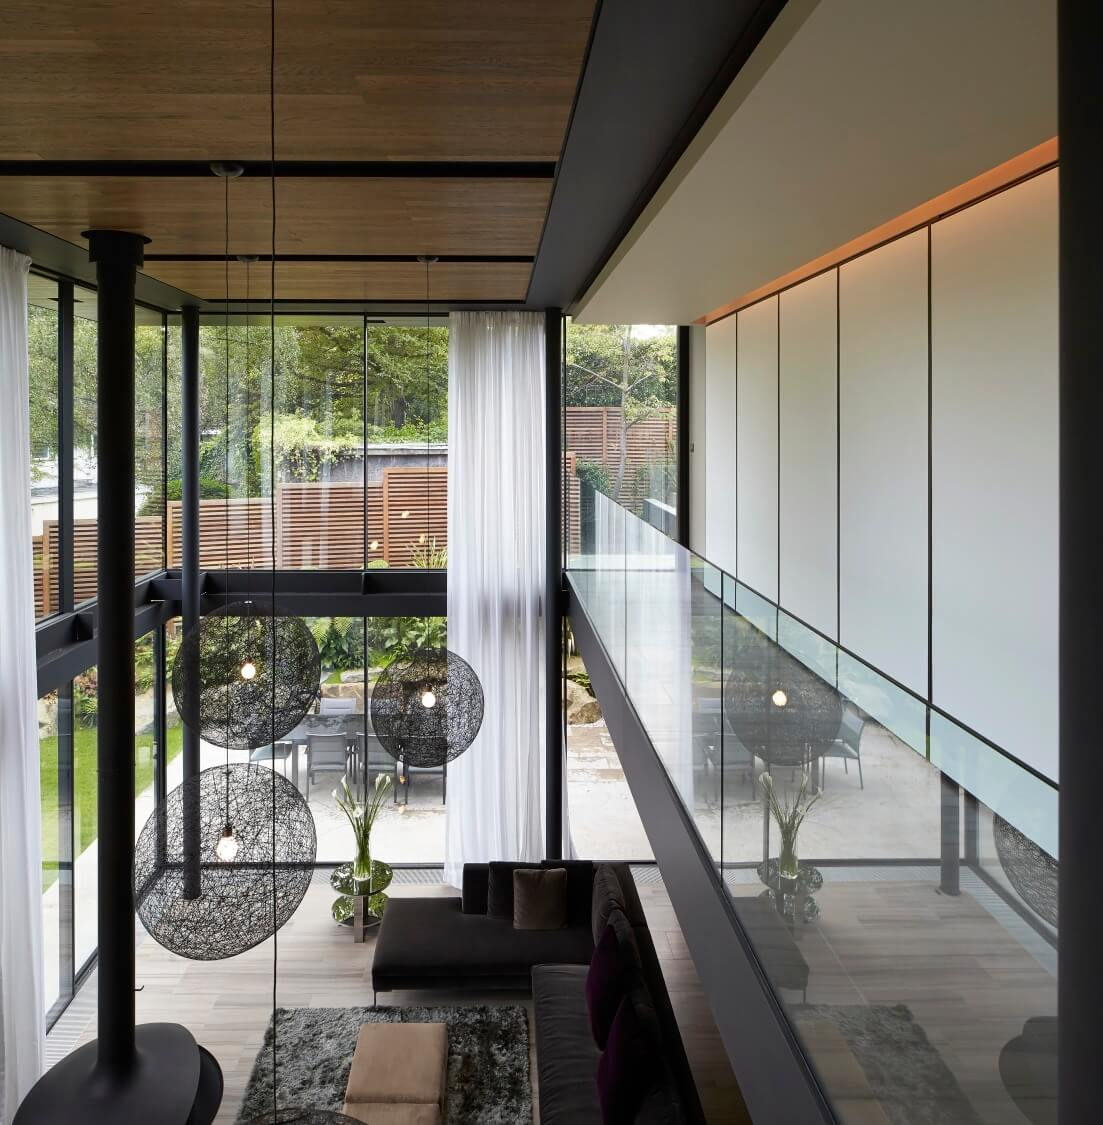 Here's the view from the study room down the length of the open-plan house, with the living room and adjacent patio in clear view.